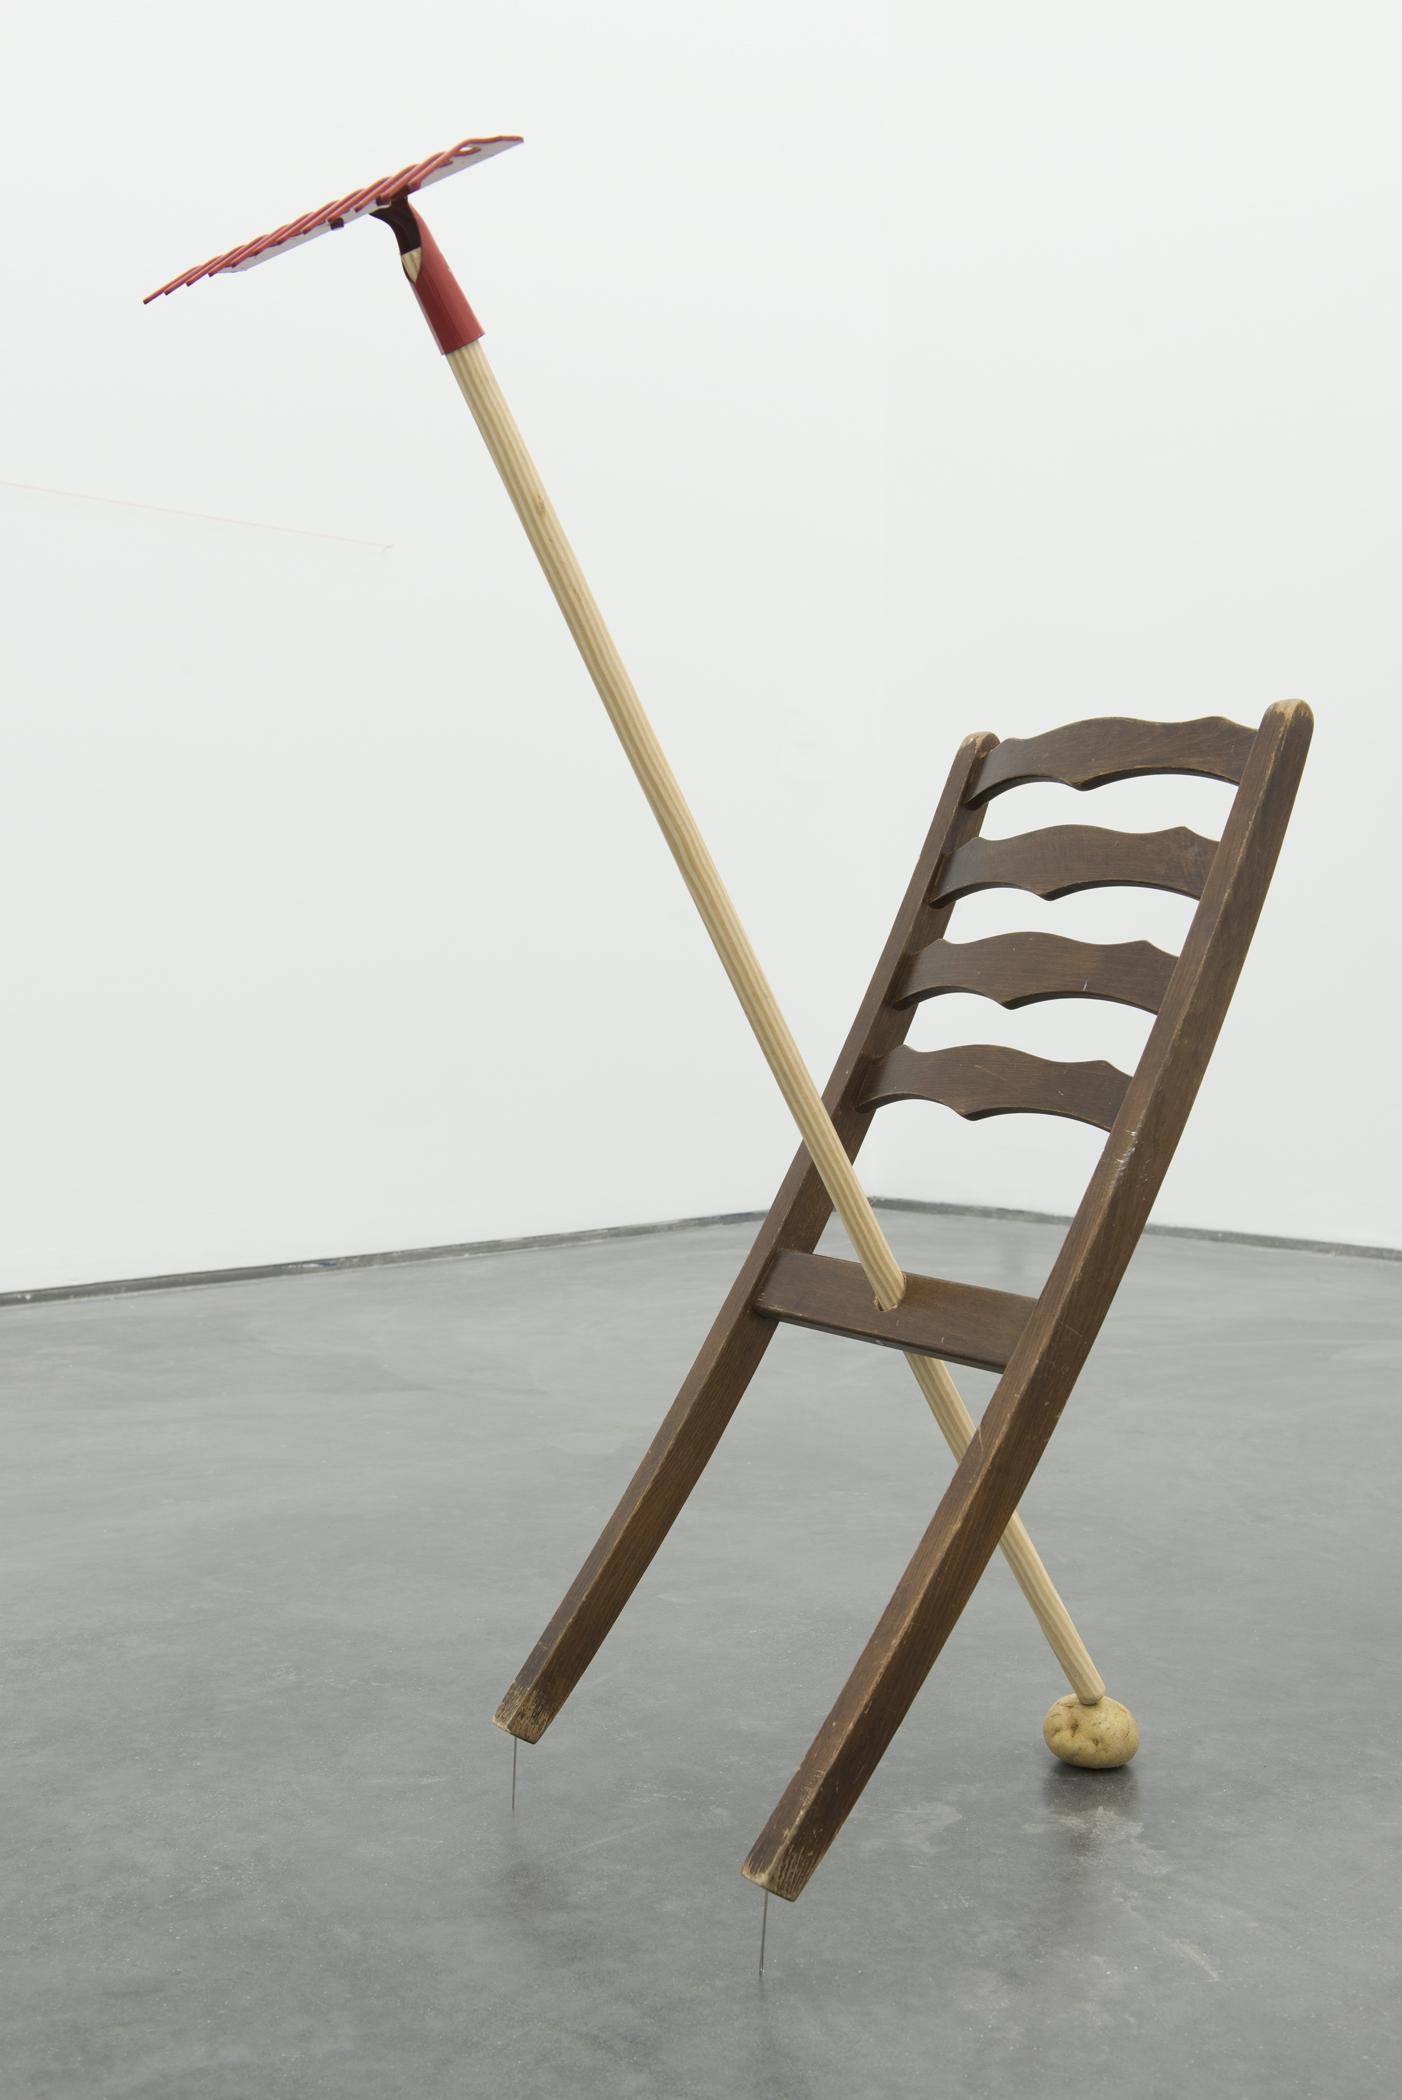 """The back portion of a slatted dinner chair has been fused with a garden hoe, forming an """"x""""."""